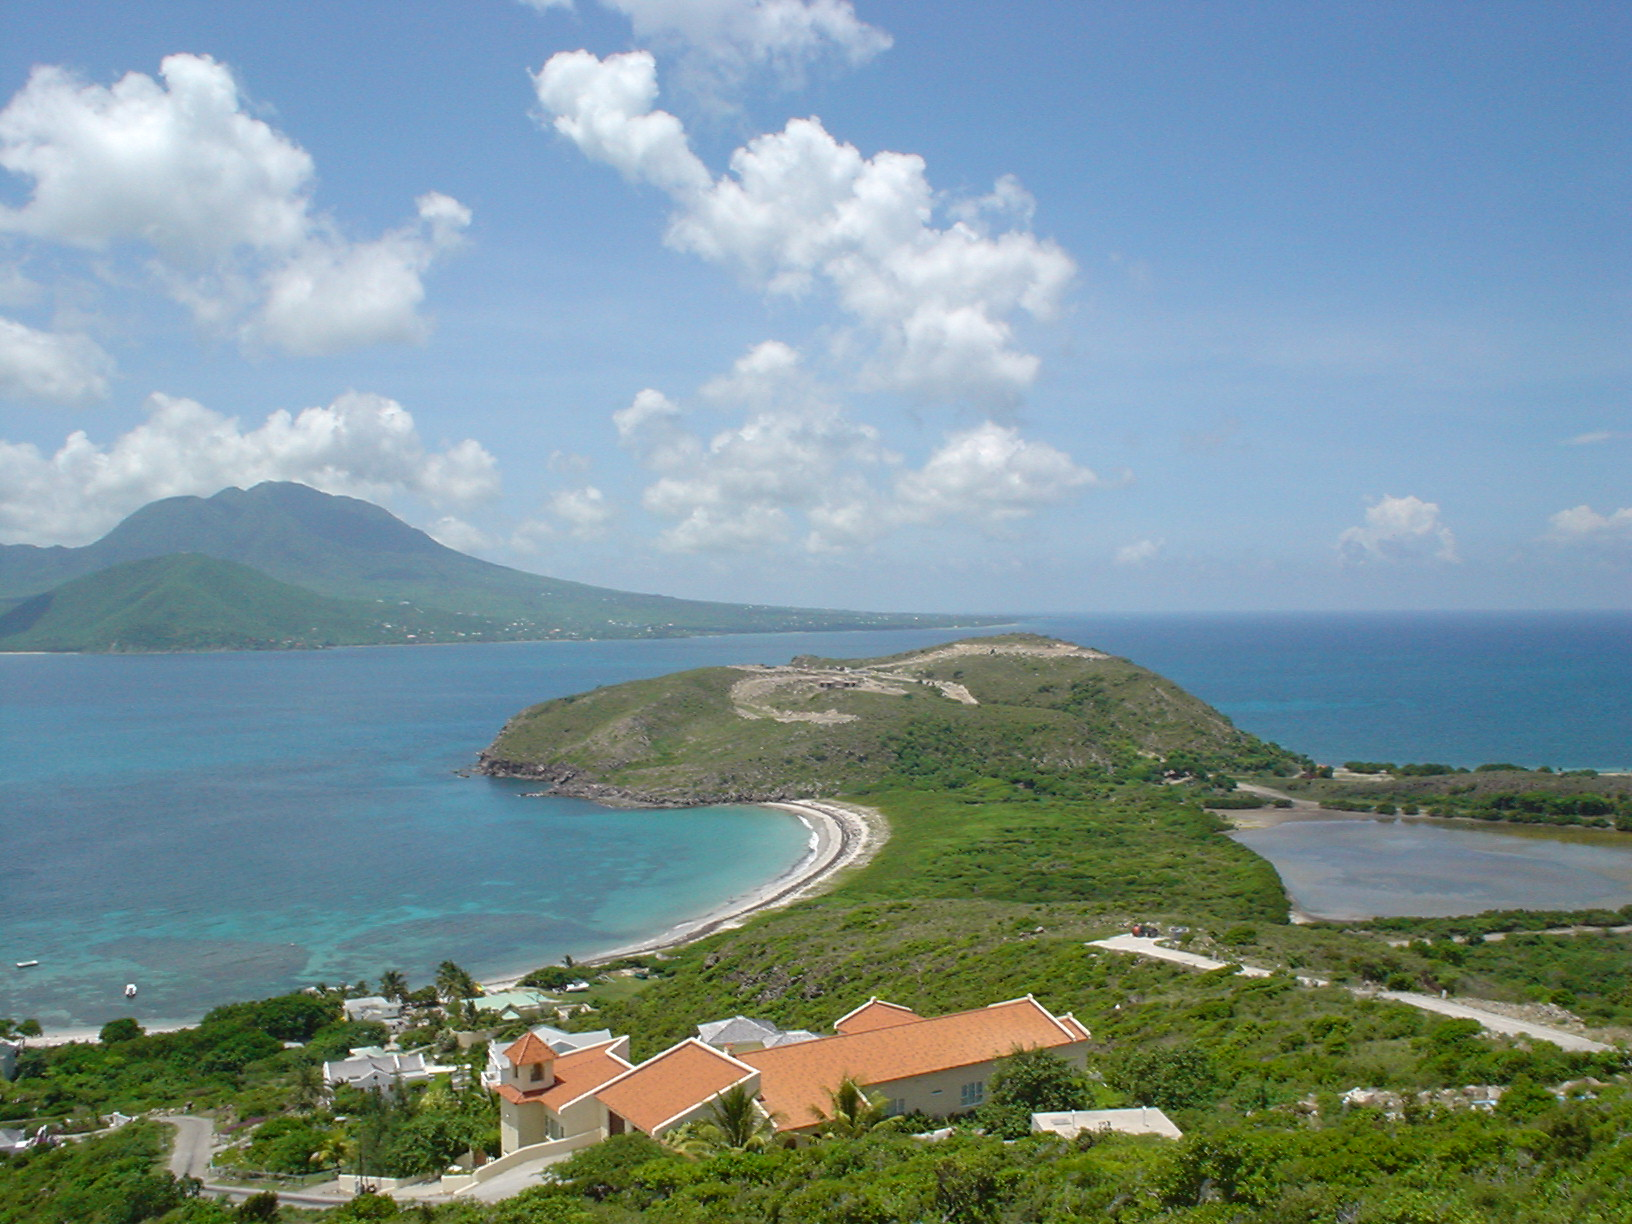 Stkitts-view-lookingatsea